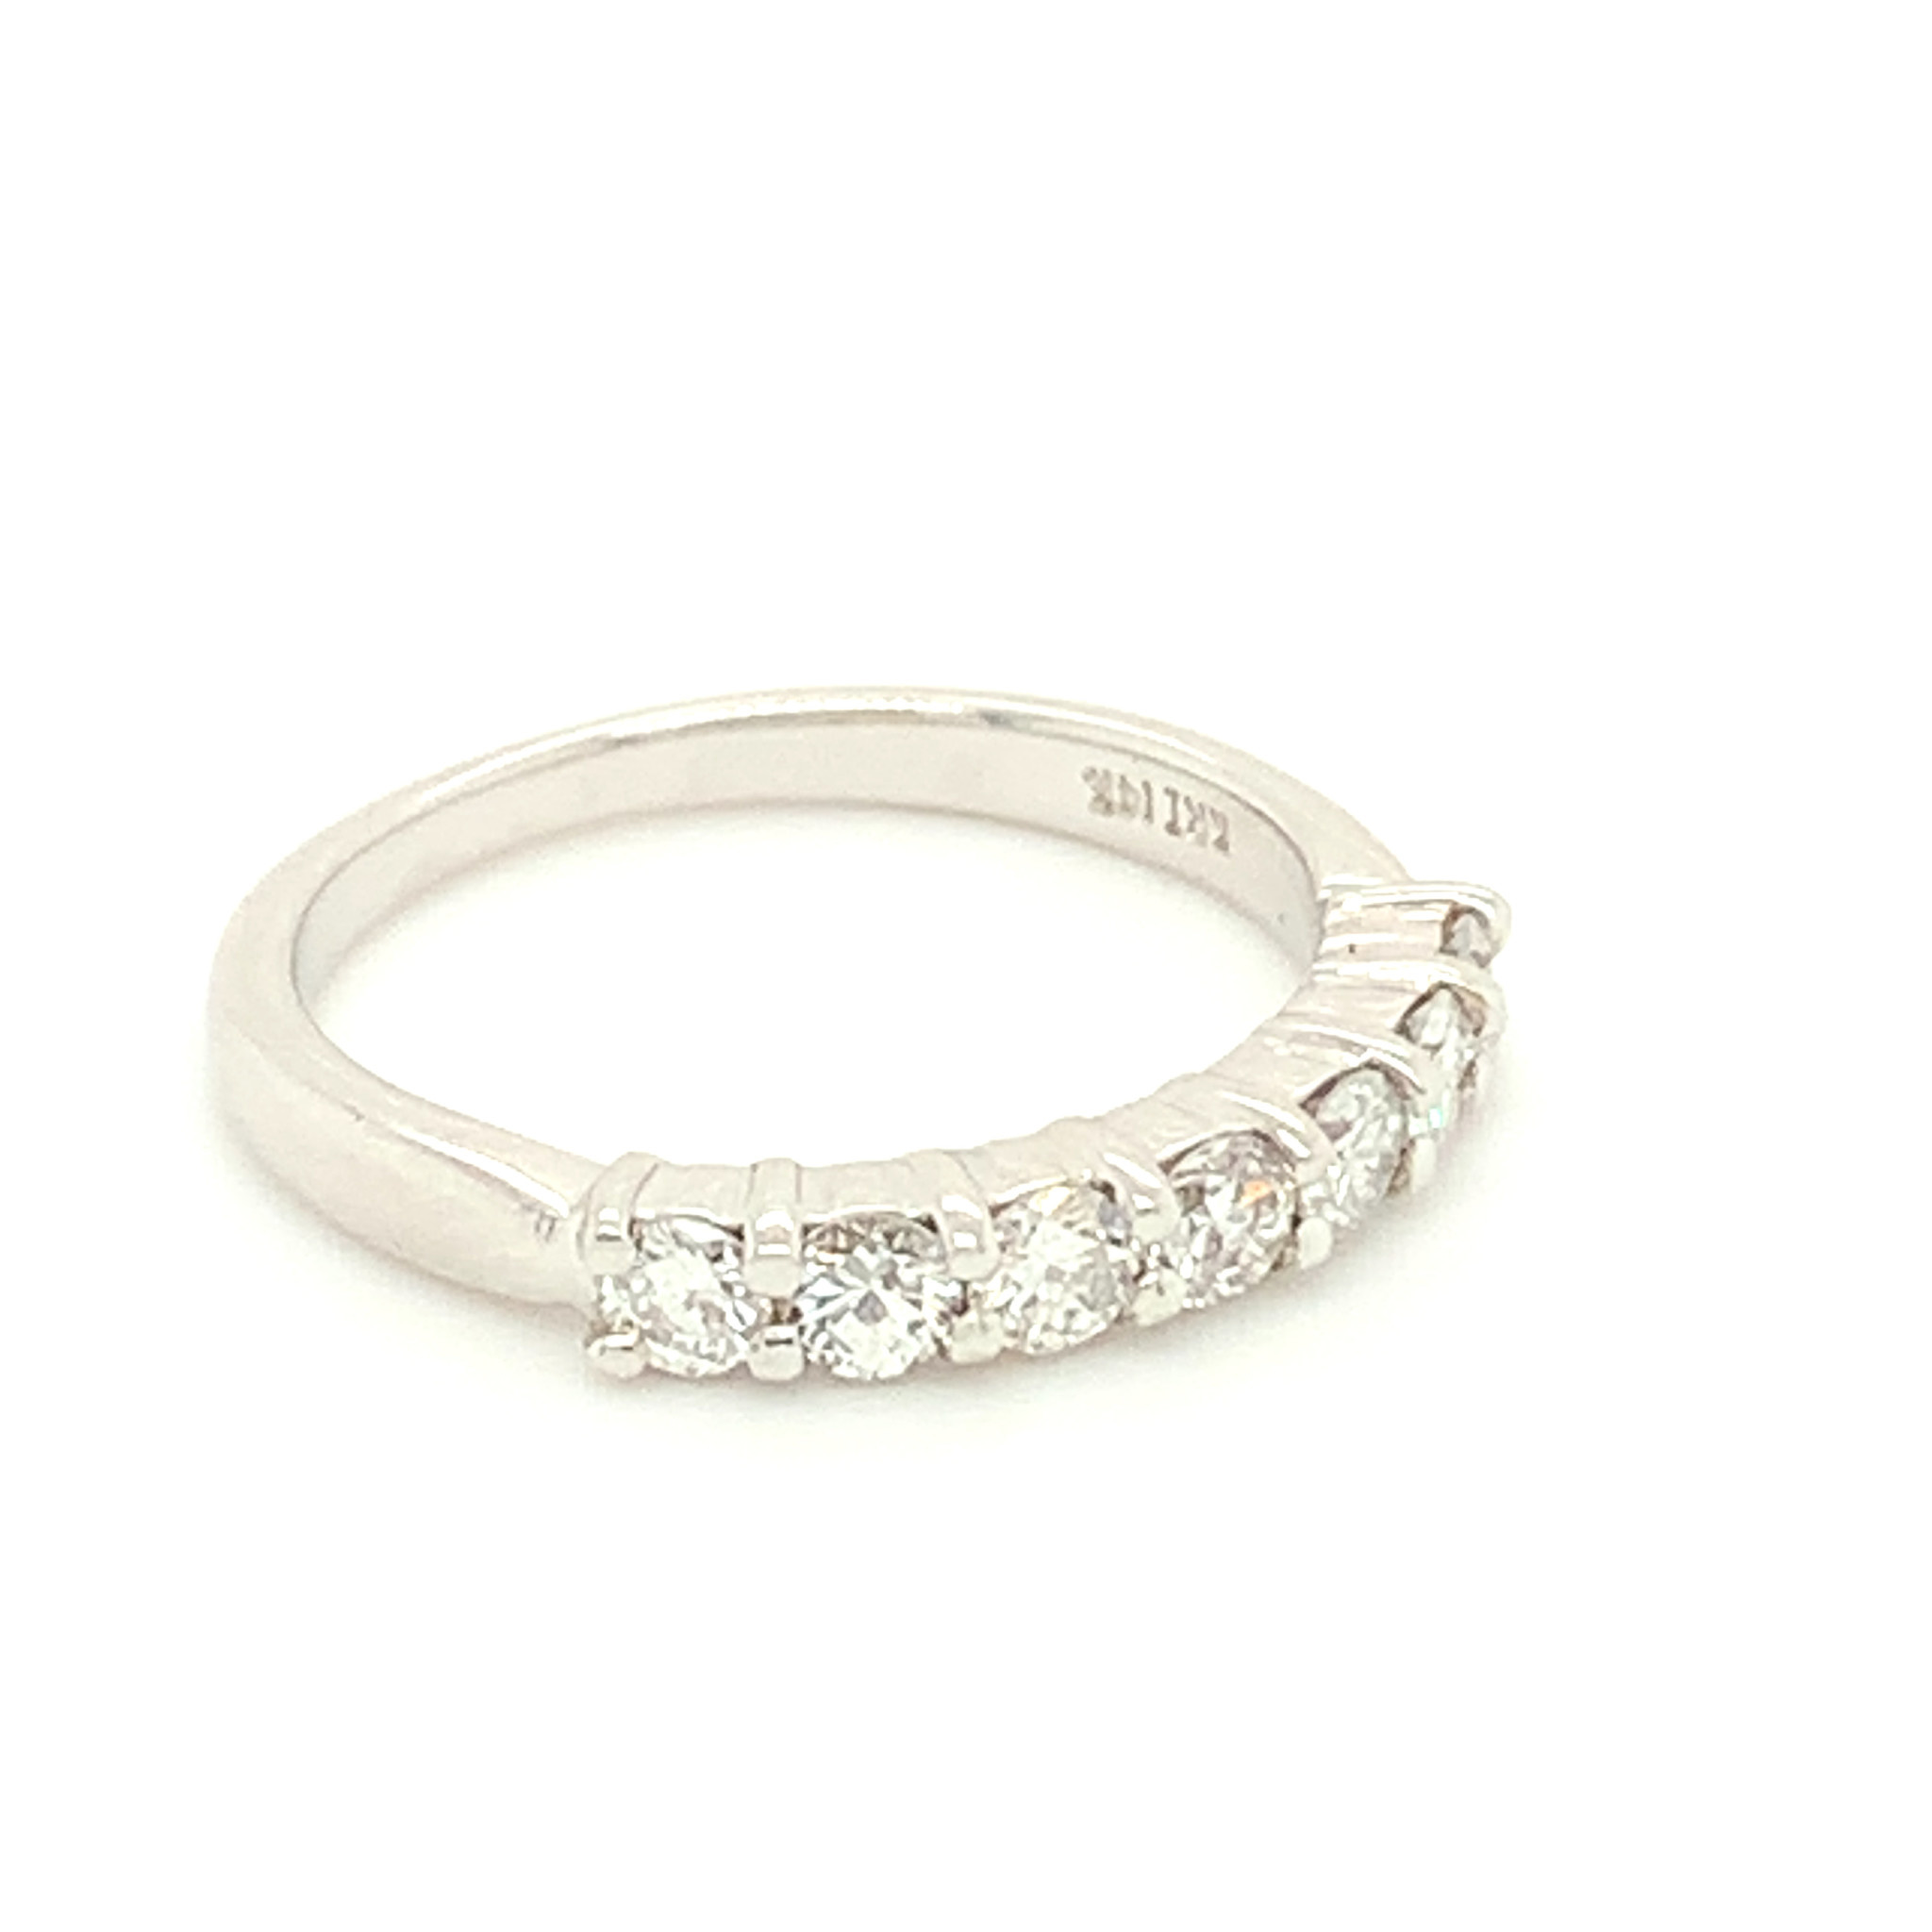 Freedman 14kt White Gold Shared Prong Diamond Band 0.64 carat total